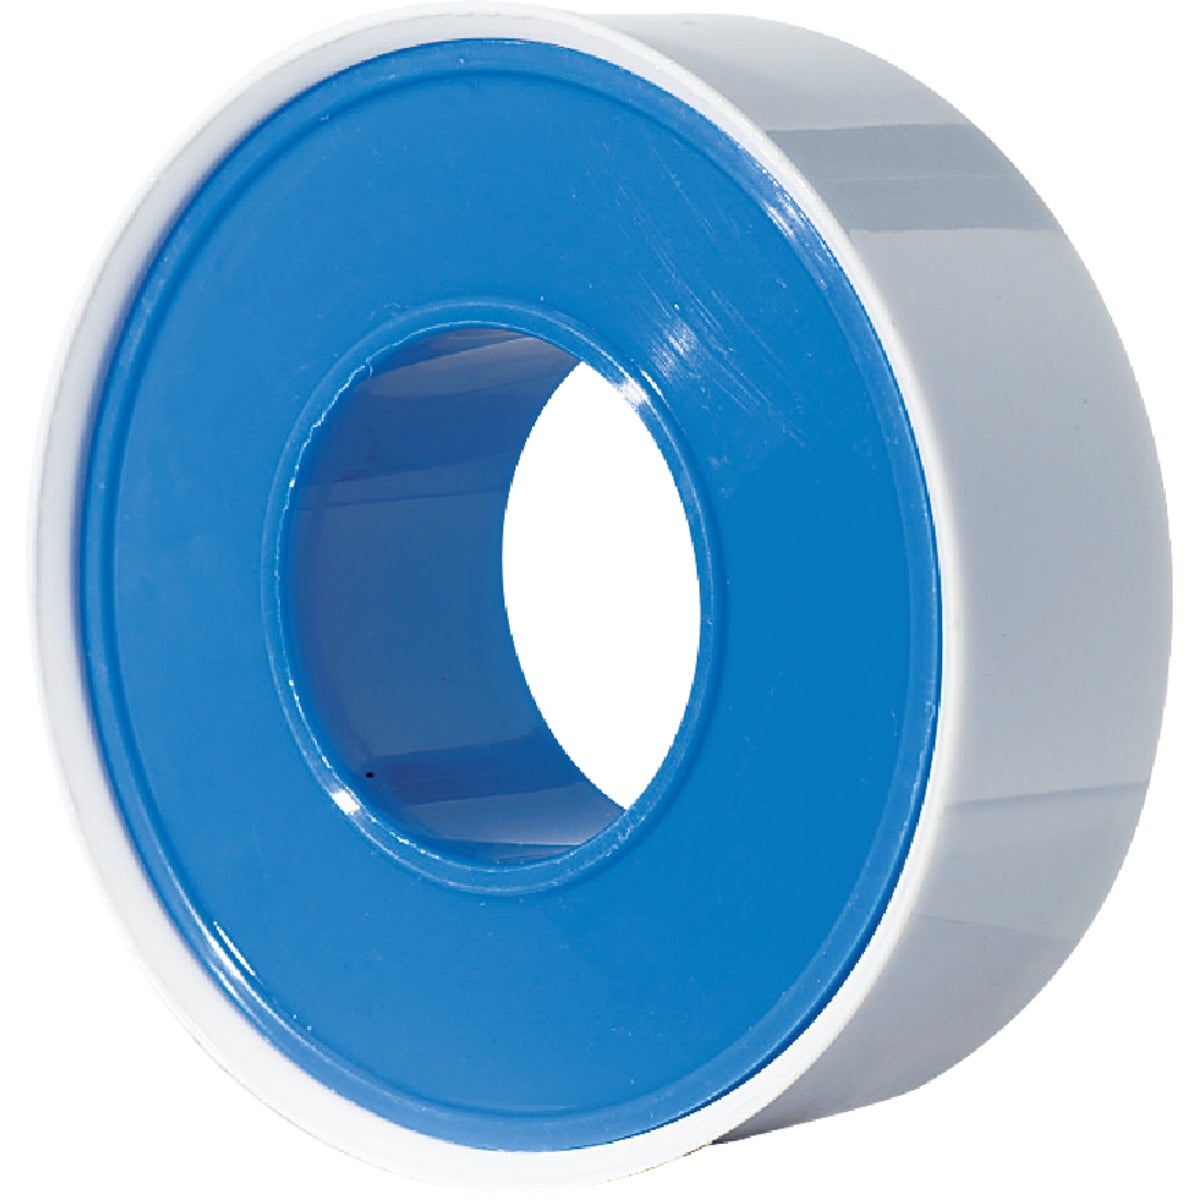 1/2X260 PTFE TAPE - 017076 by Wm H Harvey Co